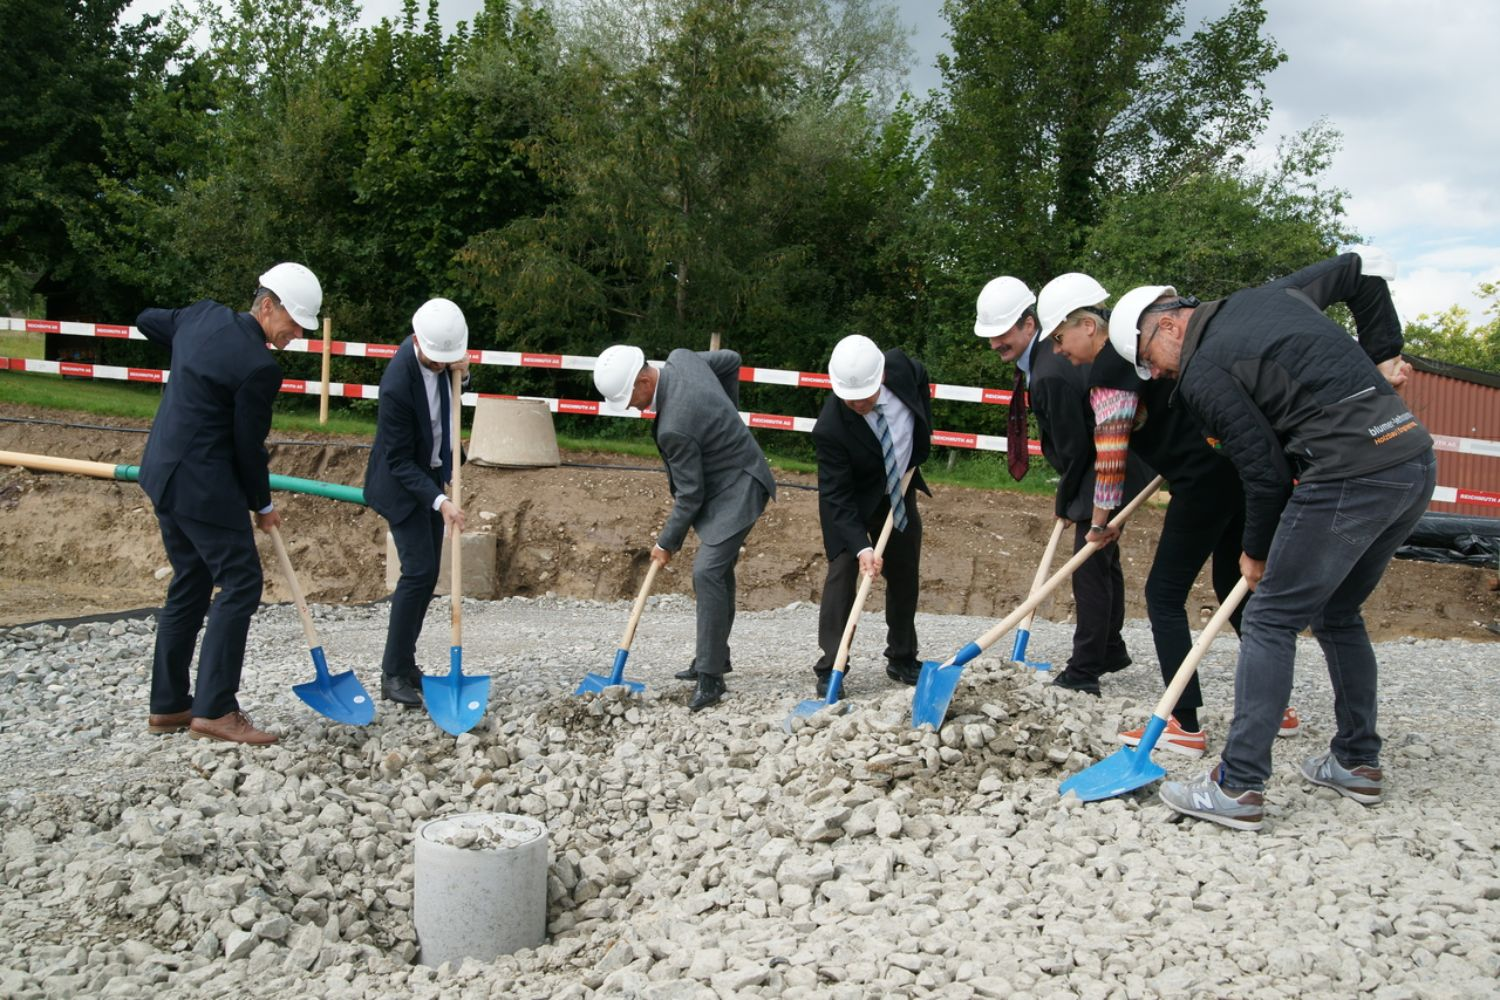 Groundbreaking ceremony on site on 7 September 2020 with Ueli Voegeli (Strickhof Director), Philipp Kutter (Mayor of Wädenswil), Daniel Baumann (Canton of Zurich Building Department), Jean-Marc Piveteau (President of ZHAW), Urs Hilber (Dean of the School of Life Sciences and Facility Management at ZHAW), Sibylle Bucher (Architect) and Migga Hug (General Contractor, Blumer-Lehmann AG).